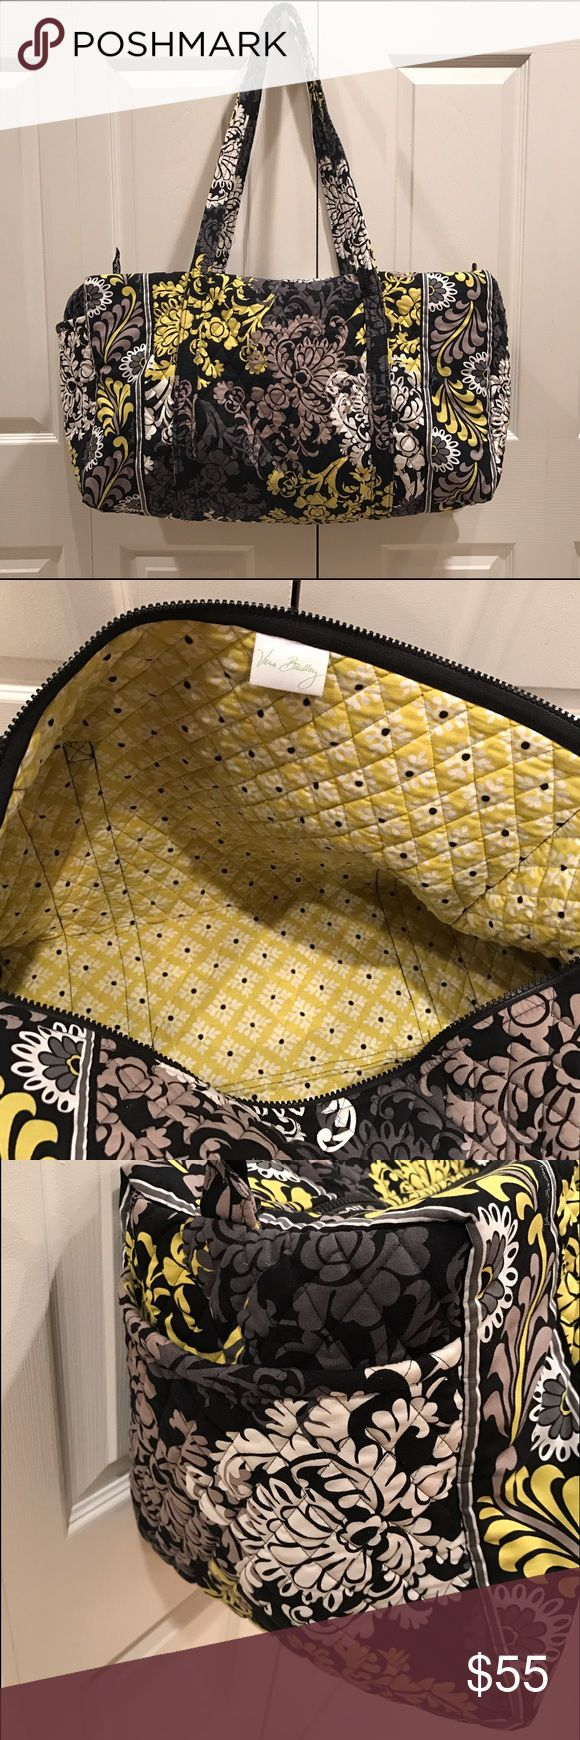 Vera Bradley Large Travel Duffle Bag Vera Bradley Large Travel Duffle Bag!  Excellent condition. Very soft material and perfect for travel. There's a large side pocket on the outside of the bag. Zip-top closure. Vera Bradley Bags Travel Bags